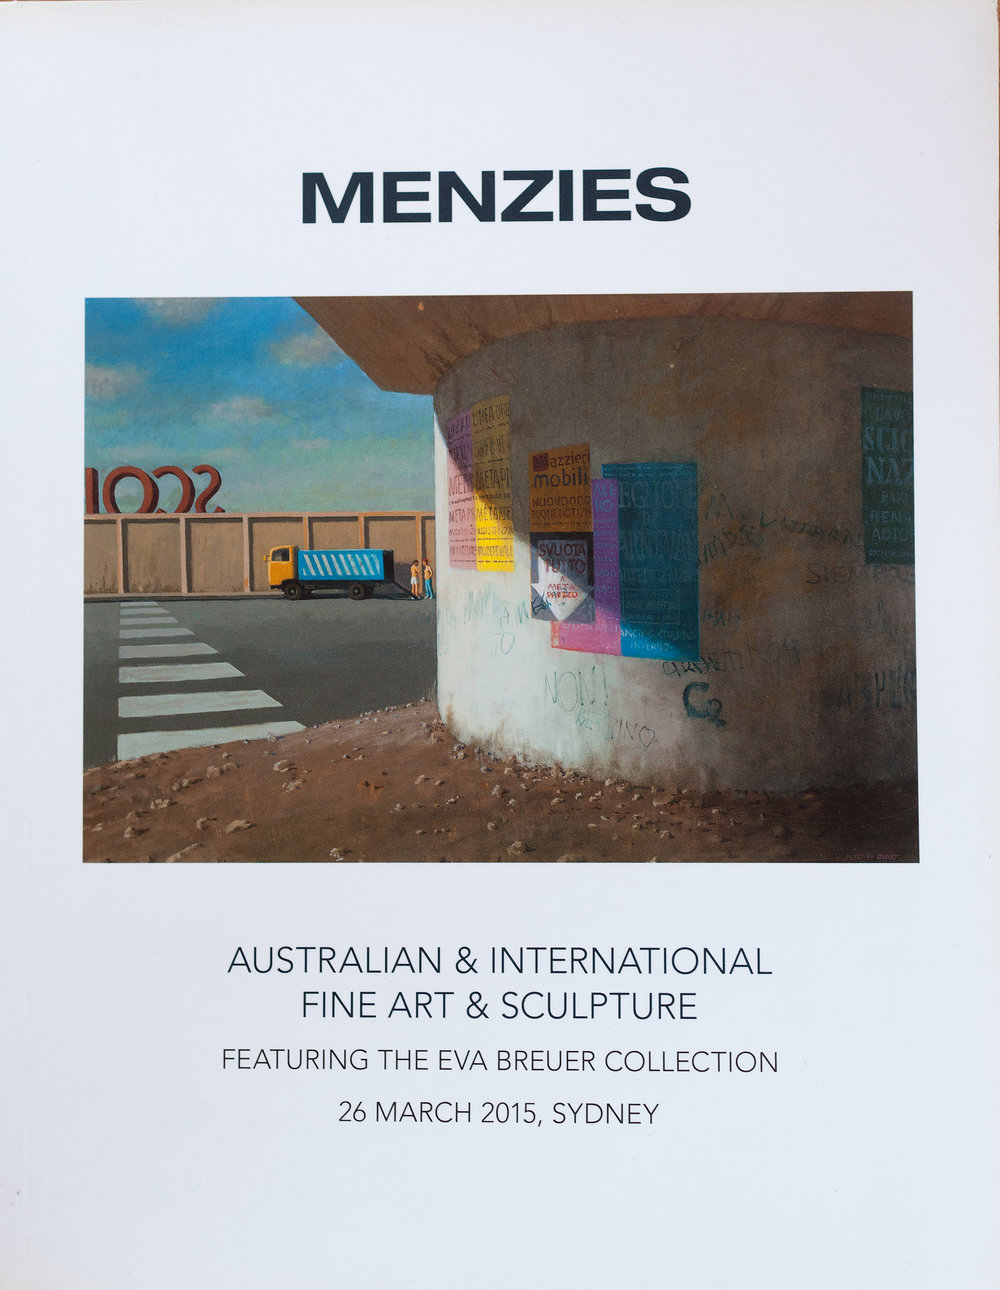 171023 Menzies Catalogues_017.jpg